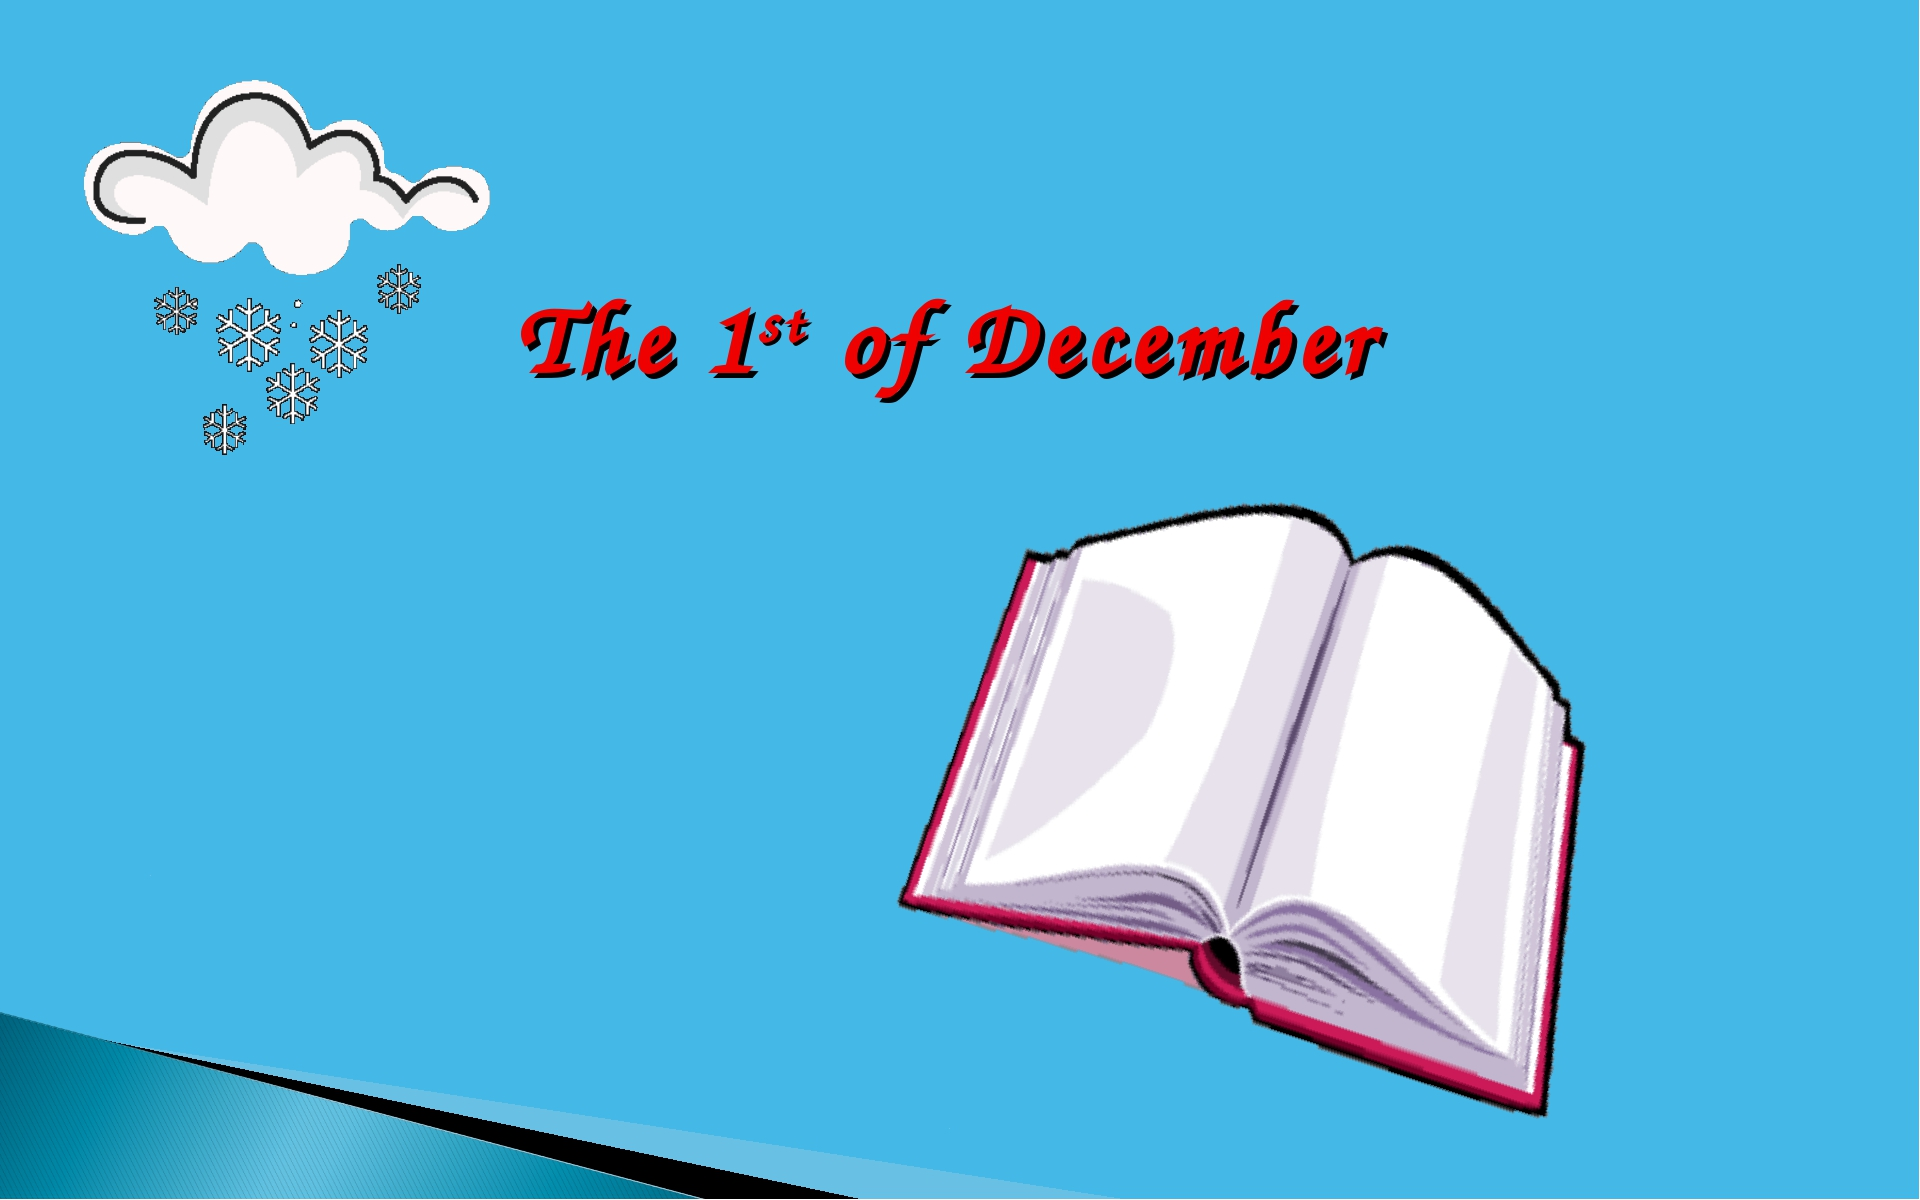 The 1st of December